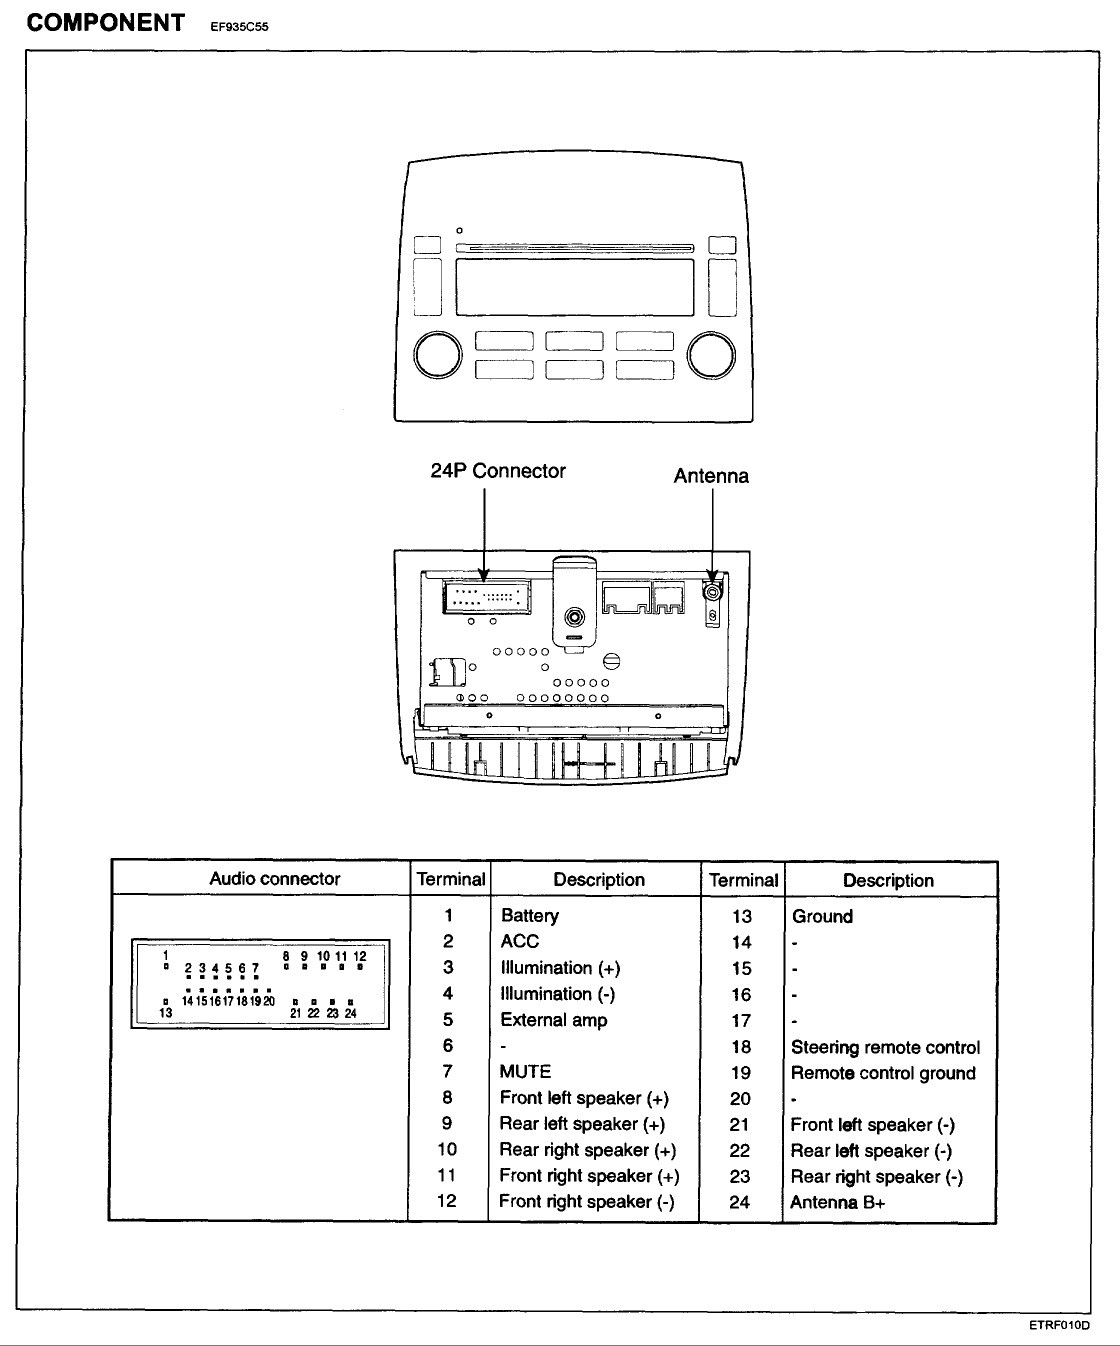 [SCHEMATICS_4HG]  DIAGRAM] 06 Hyundai Santa Fe Radio Diagram FULL Version HD Quality Radio  Diagram - IECQUALITY.MARKETCAP.IT | 2004 Hyundai Santa Fe Radio Wiring Diagram |  | iecquality.marketcap.it